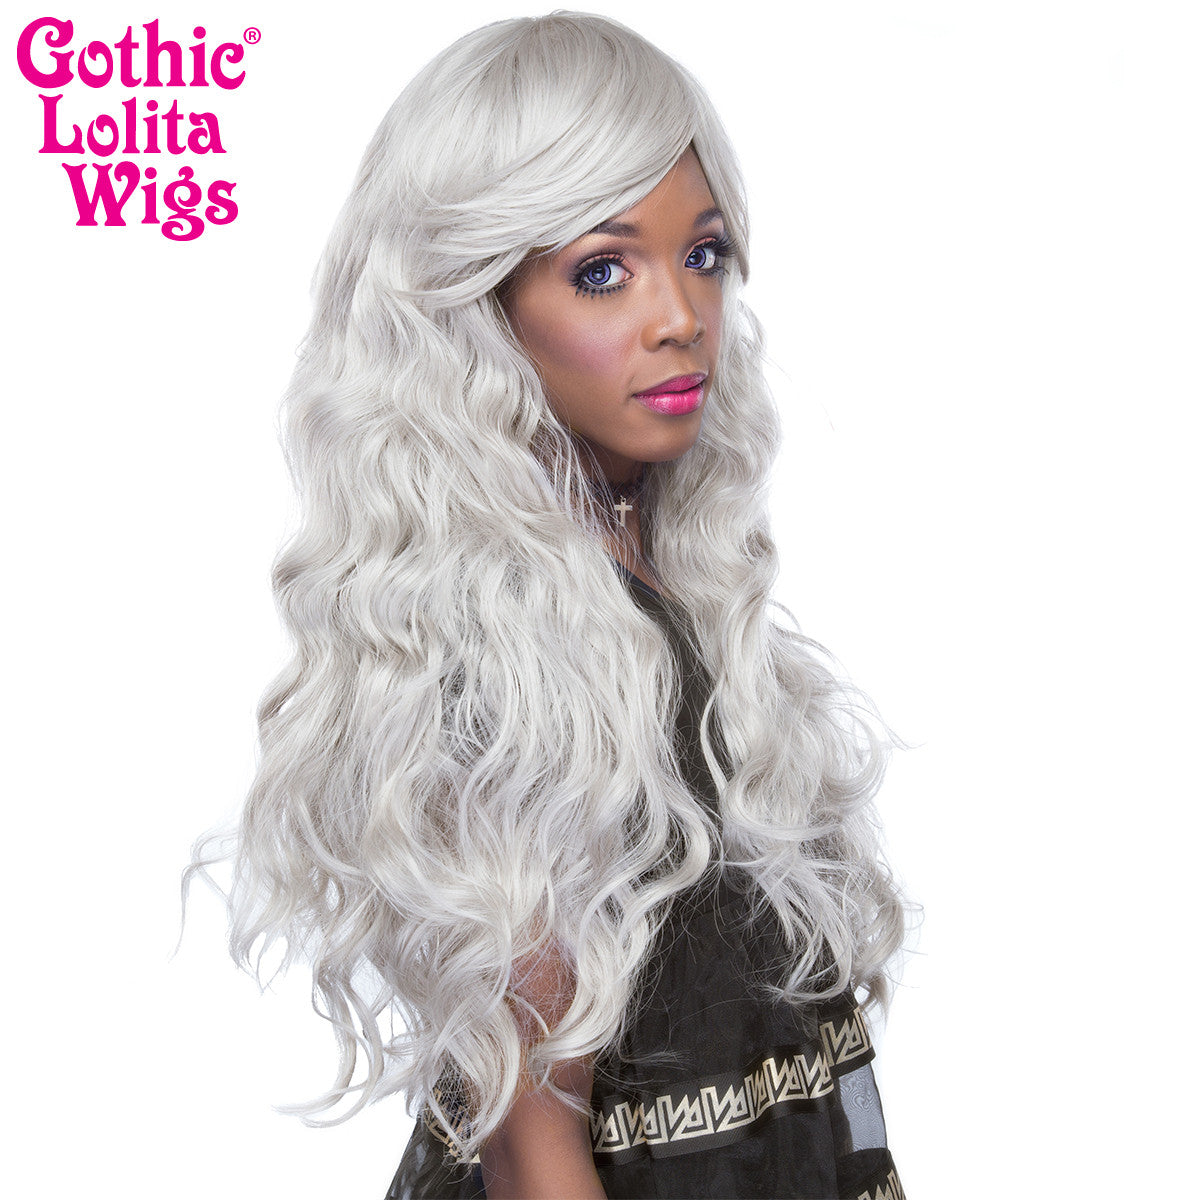 Gothic Lolita Wigs® <br> Classic Wavy Lolita™ Collection - Silver/Light Grey -00046